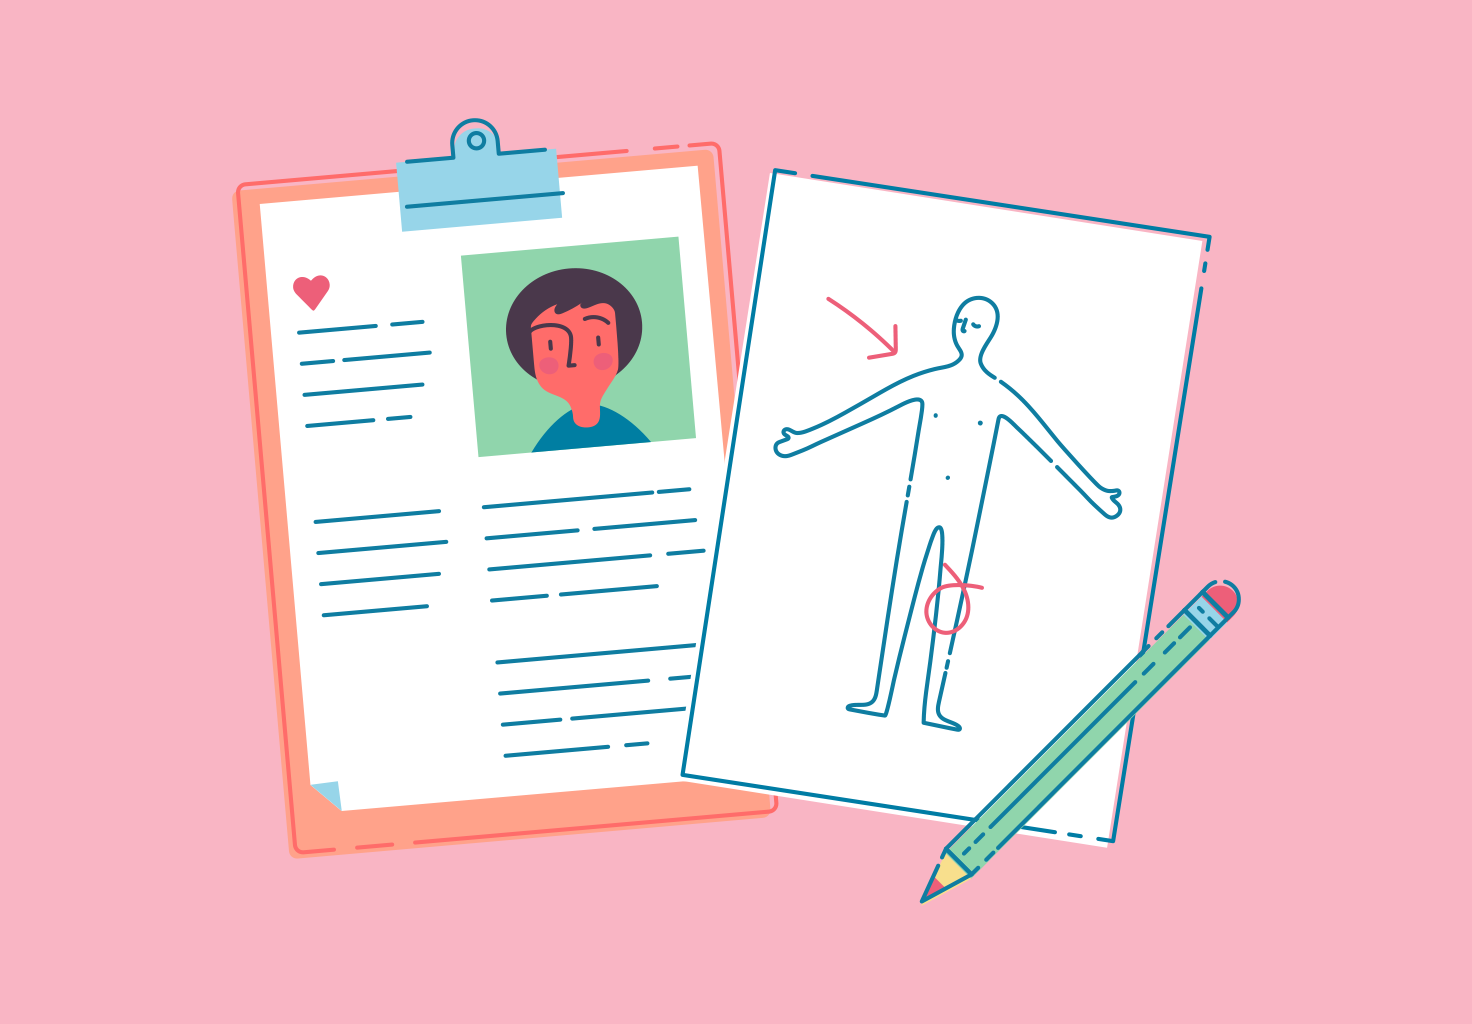 An illustration of a patient record folder, including a body chart.